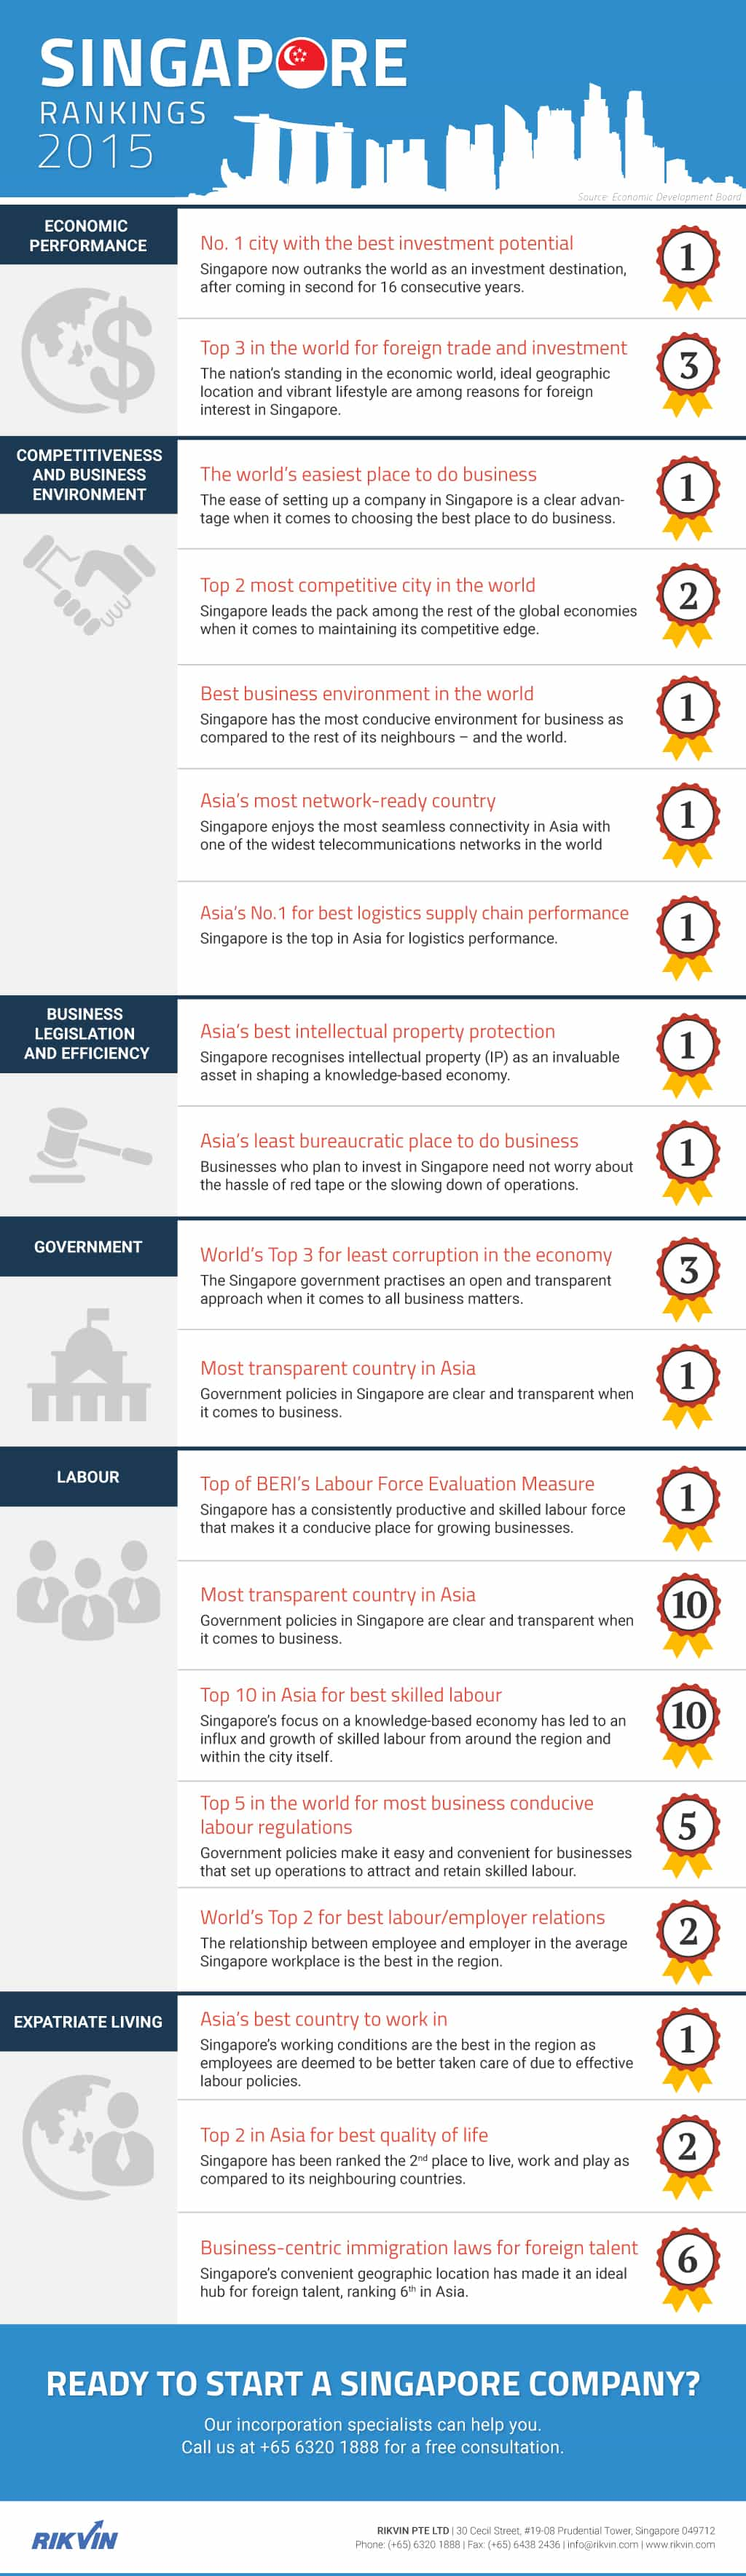 Singapore_Rankings-Rikvin_Infographic Singapore Rankings 2015: Why invest in Singapore?